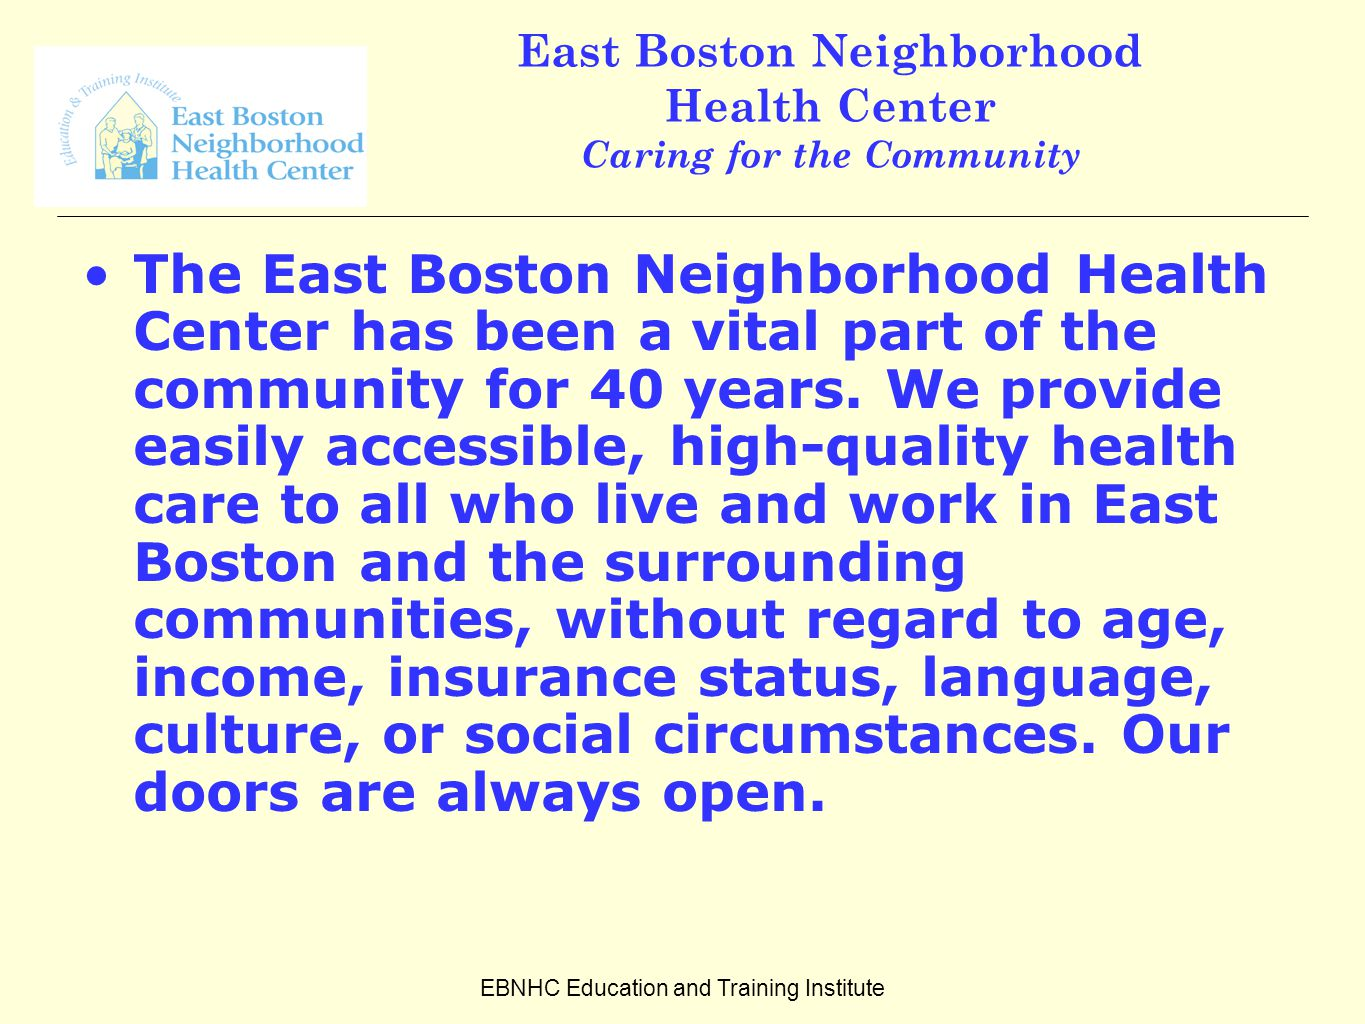 EBNHC Education and Training Institute East Boston Neighborhood Health Center Caring for the Community The East Boston Neighborhood Health Center has been a vital part of the community for 40 years.